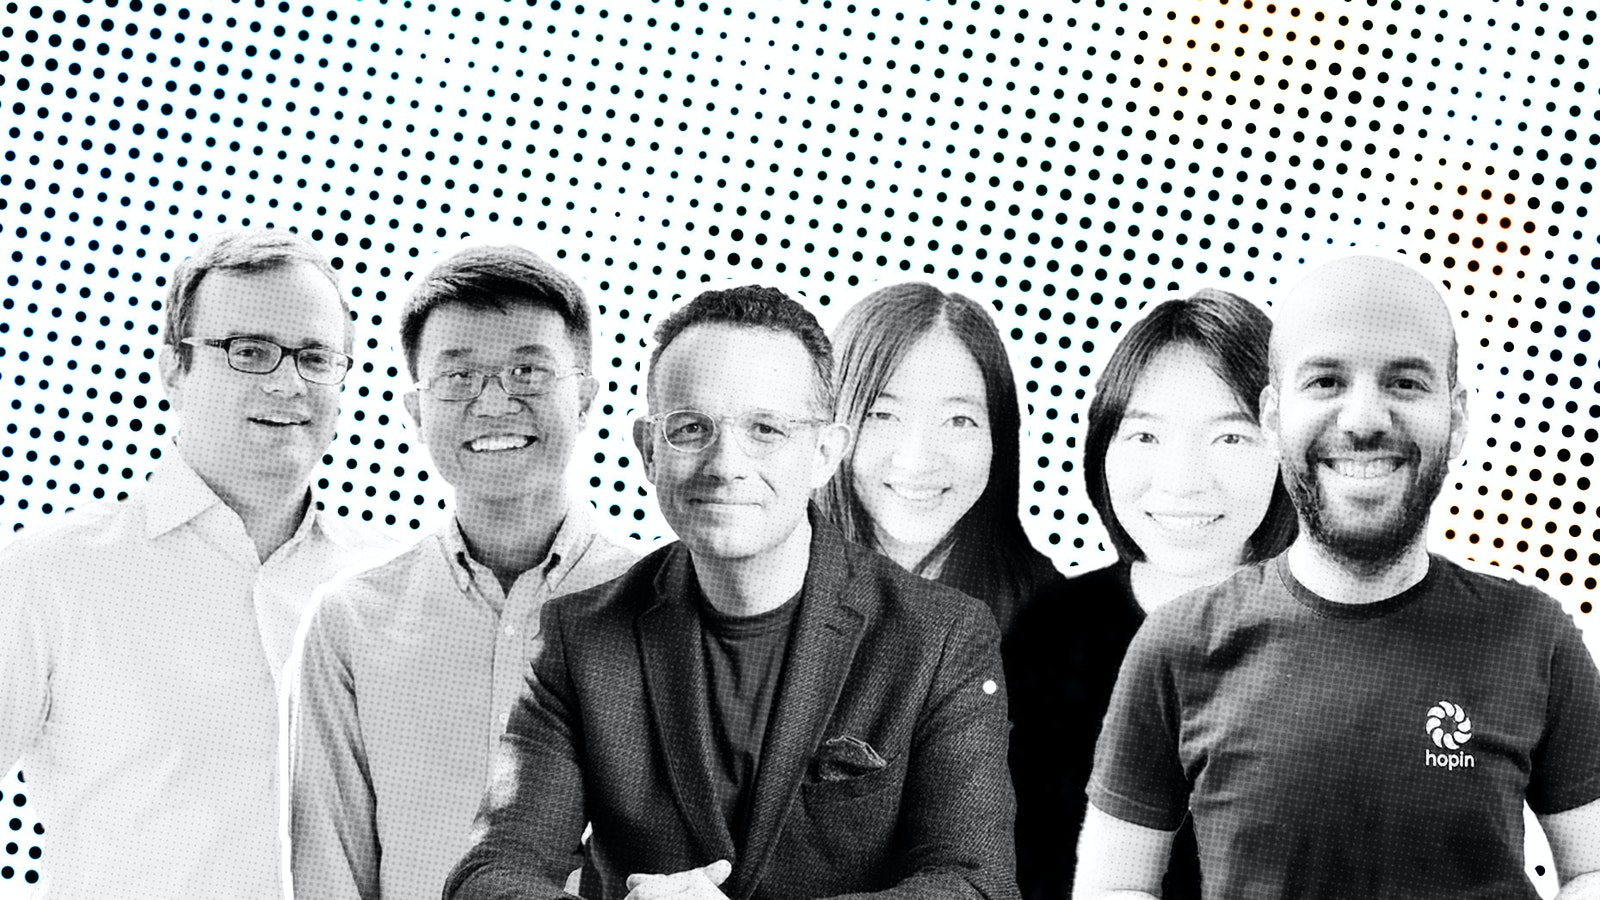 From left to right: Lunchclub founders Vladimir Novakovski and Scott Wu; Mmhmm founder Phil Libin; Run The World founders Xiaoyin Qu and Xuan Jiang; Hopin founder Johnny Boufarhat. Photos courtesy of the companies.